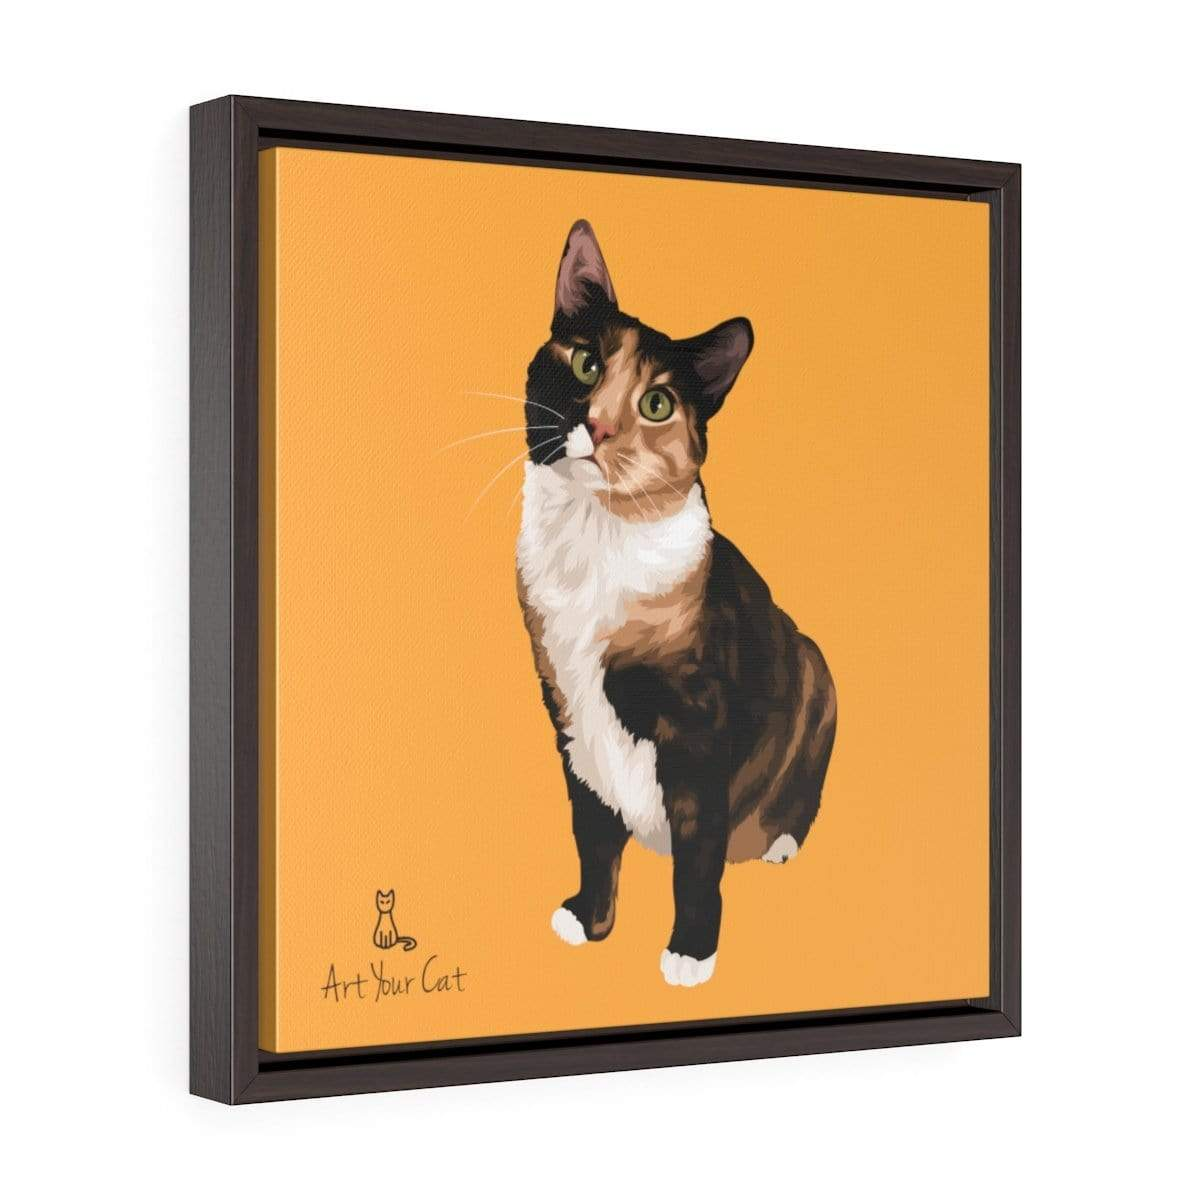 Your Cat Square Framed Premium Gallery Wrap Canvas Art Your Cat